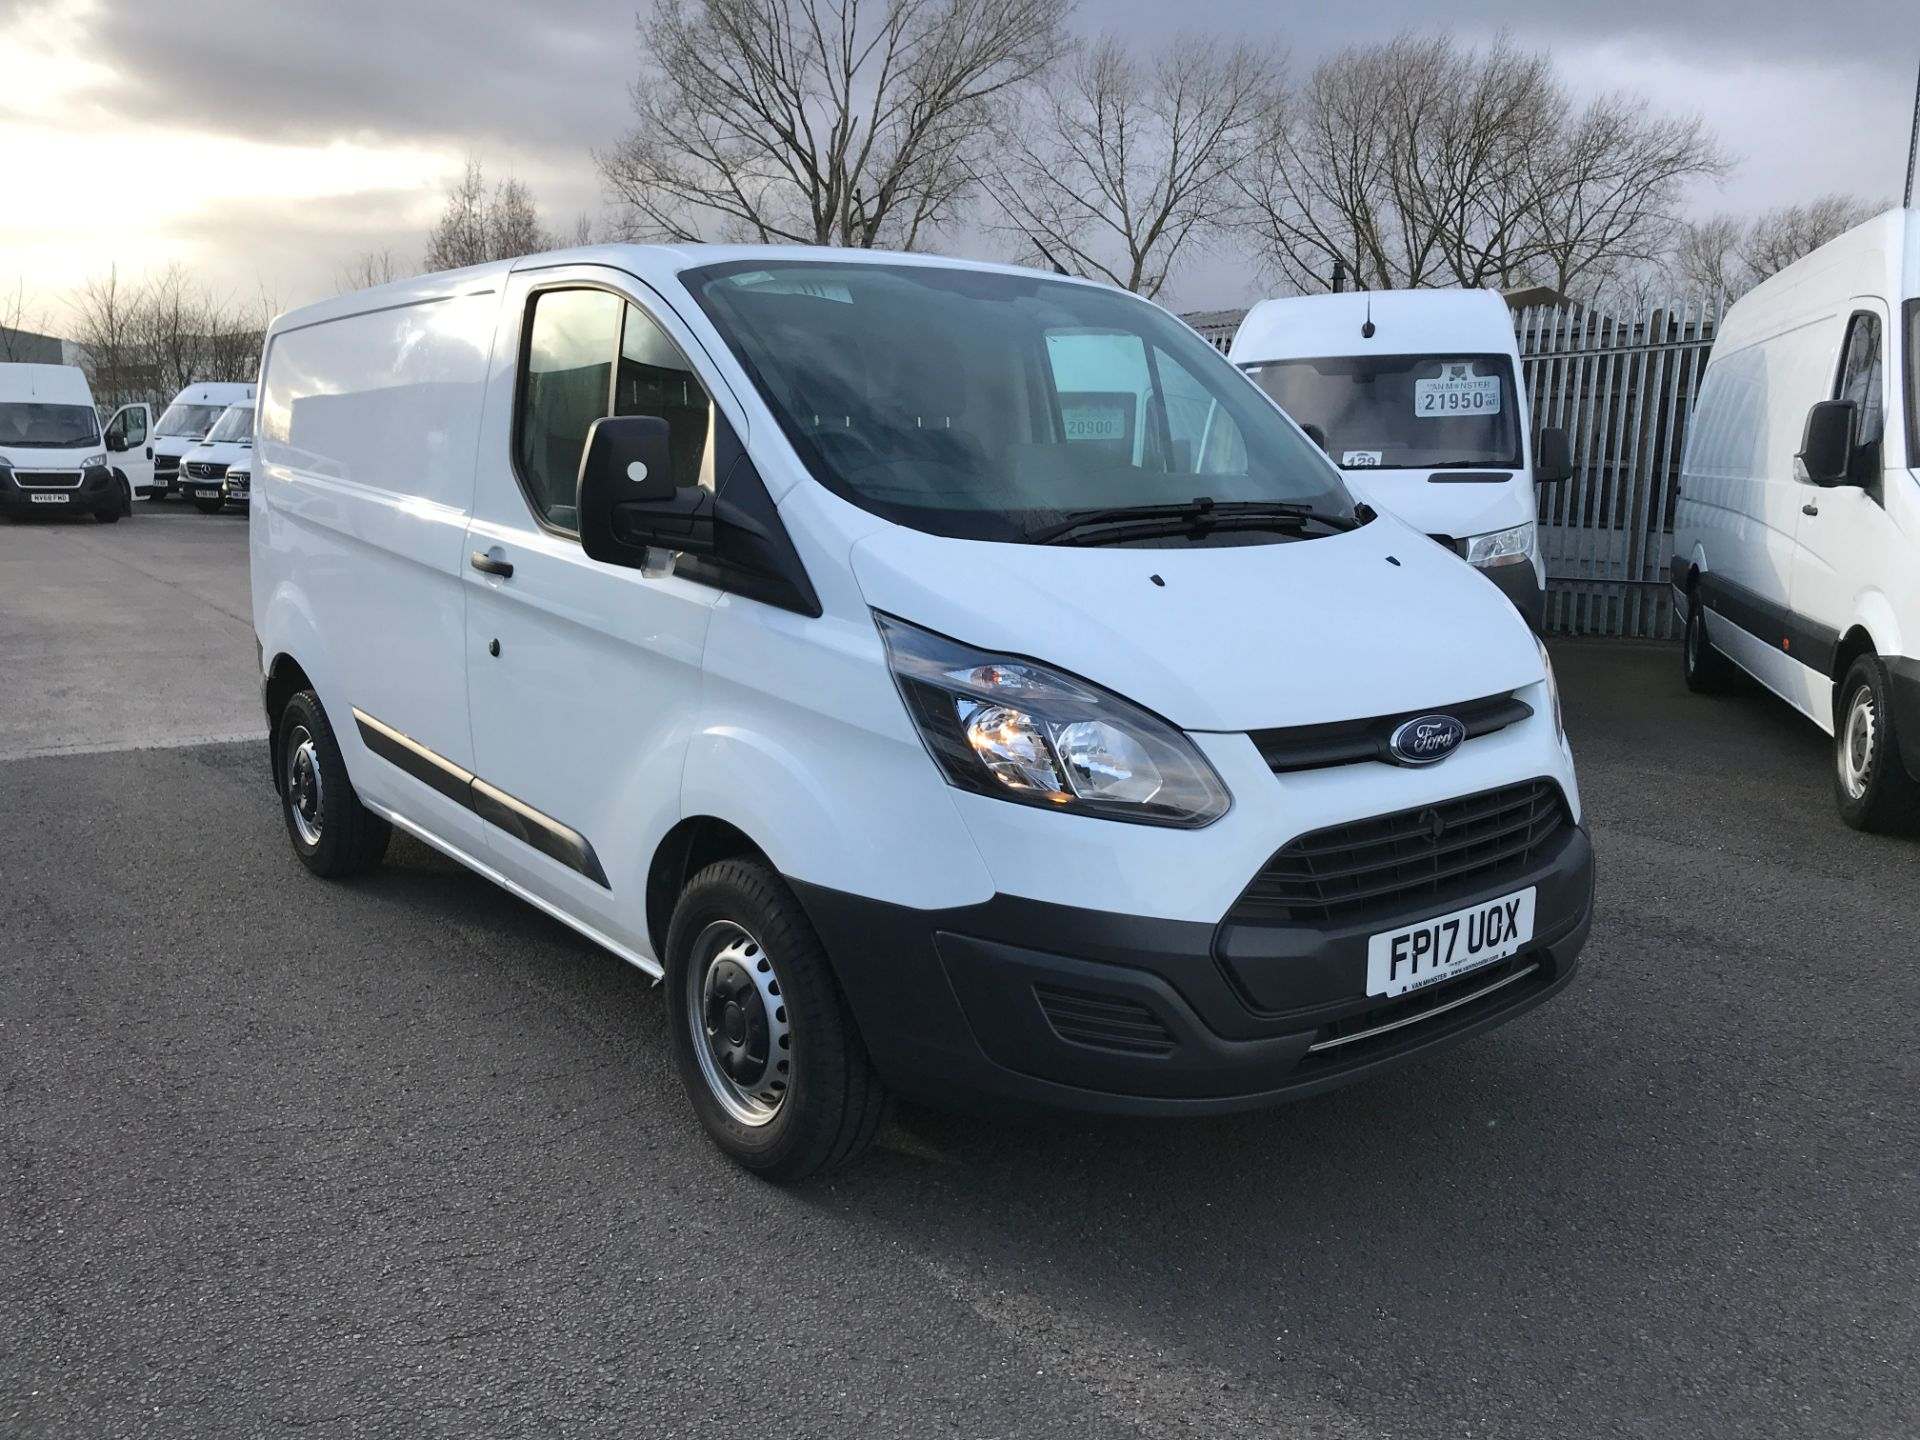 2017 Ford Transit Custom  290 L1 2.0TDCI 105PS LOW ROOF EURO 6 (FP17UOX)